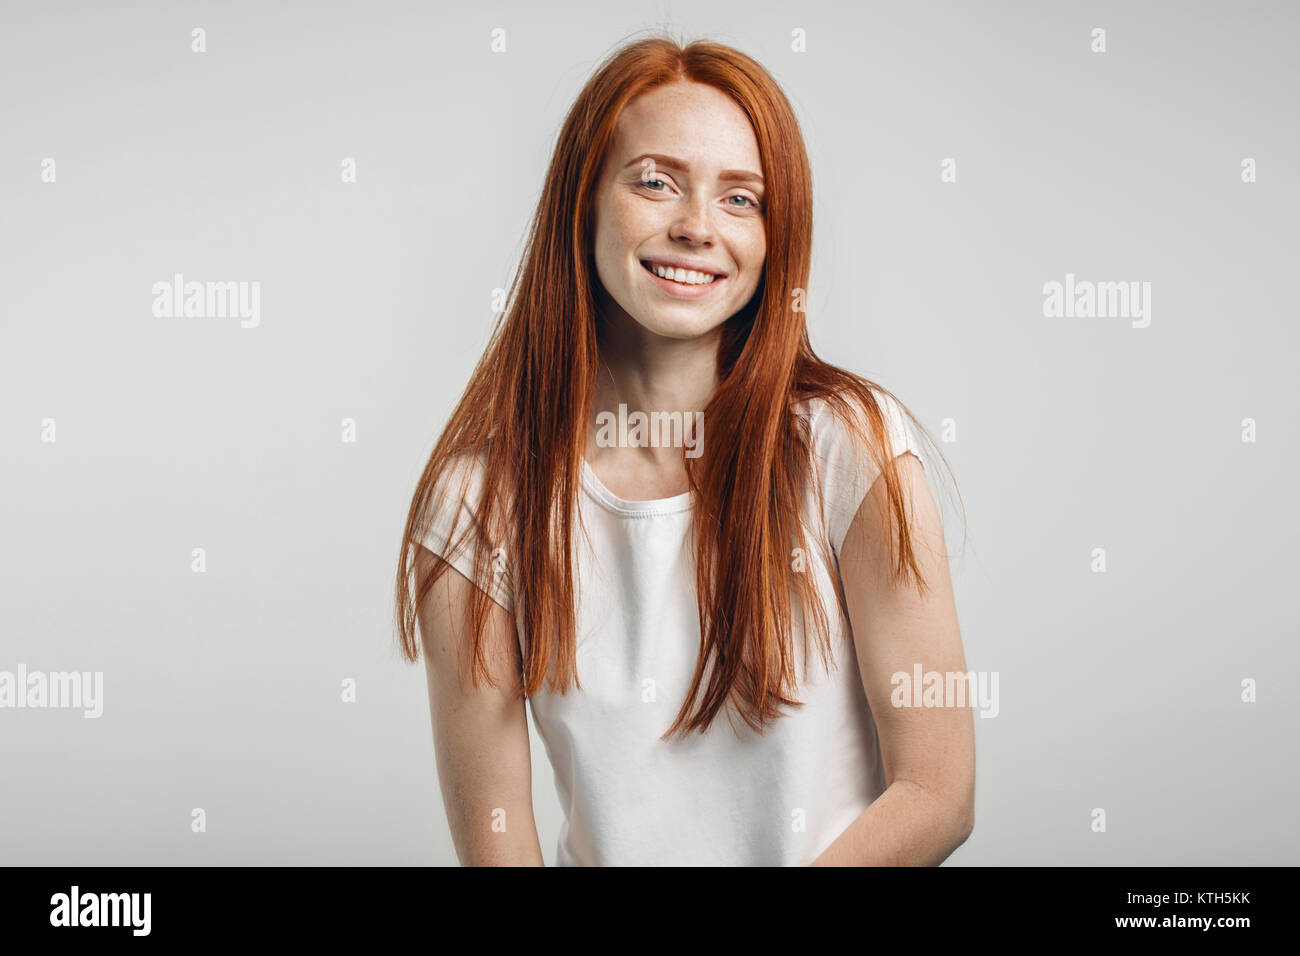 Commit error. Red head girl with cum on body really